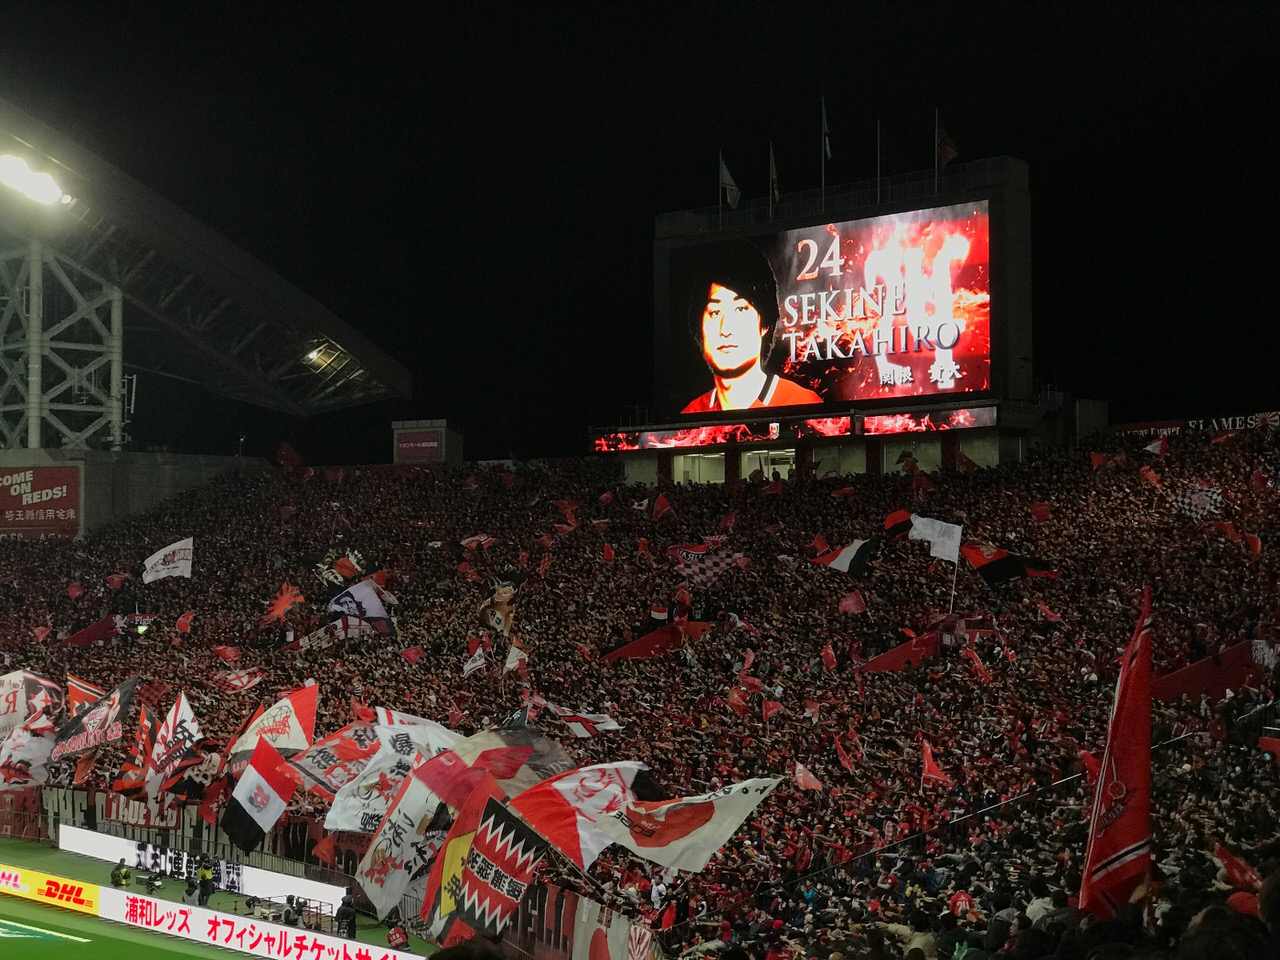 Pride of urawa 2733